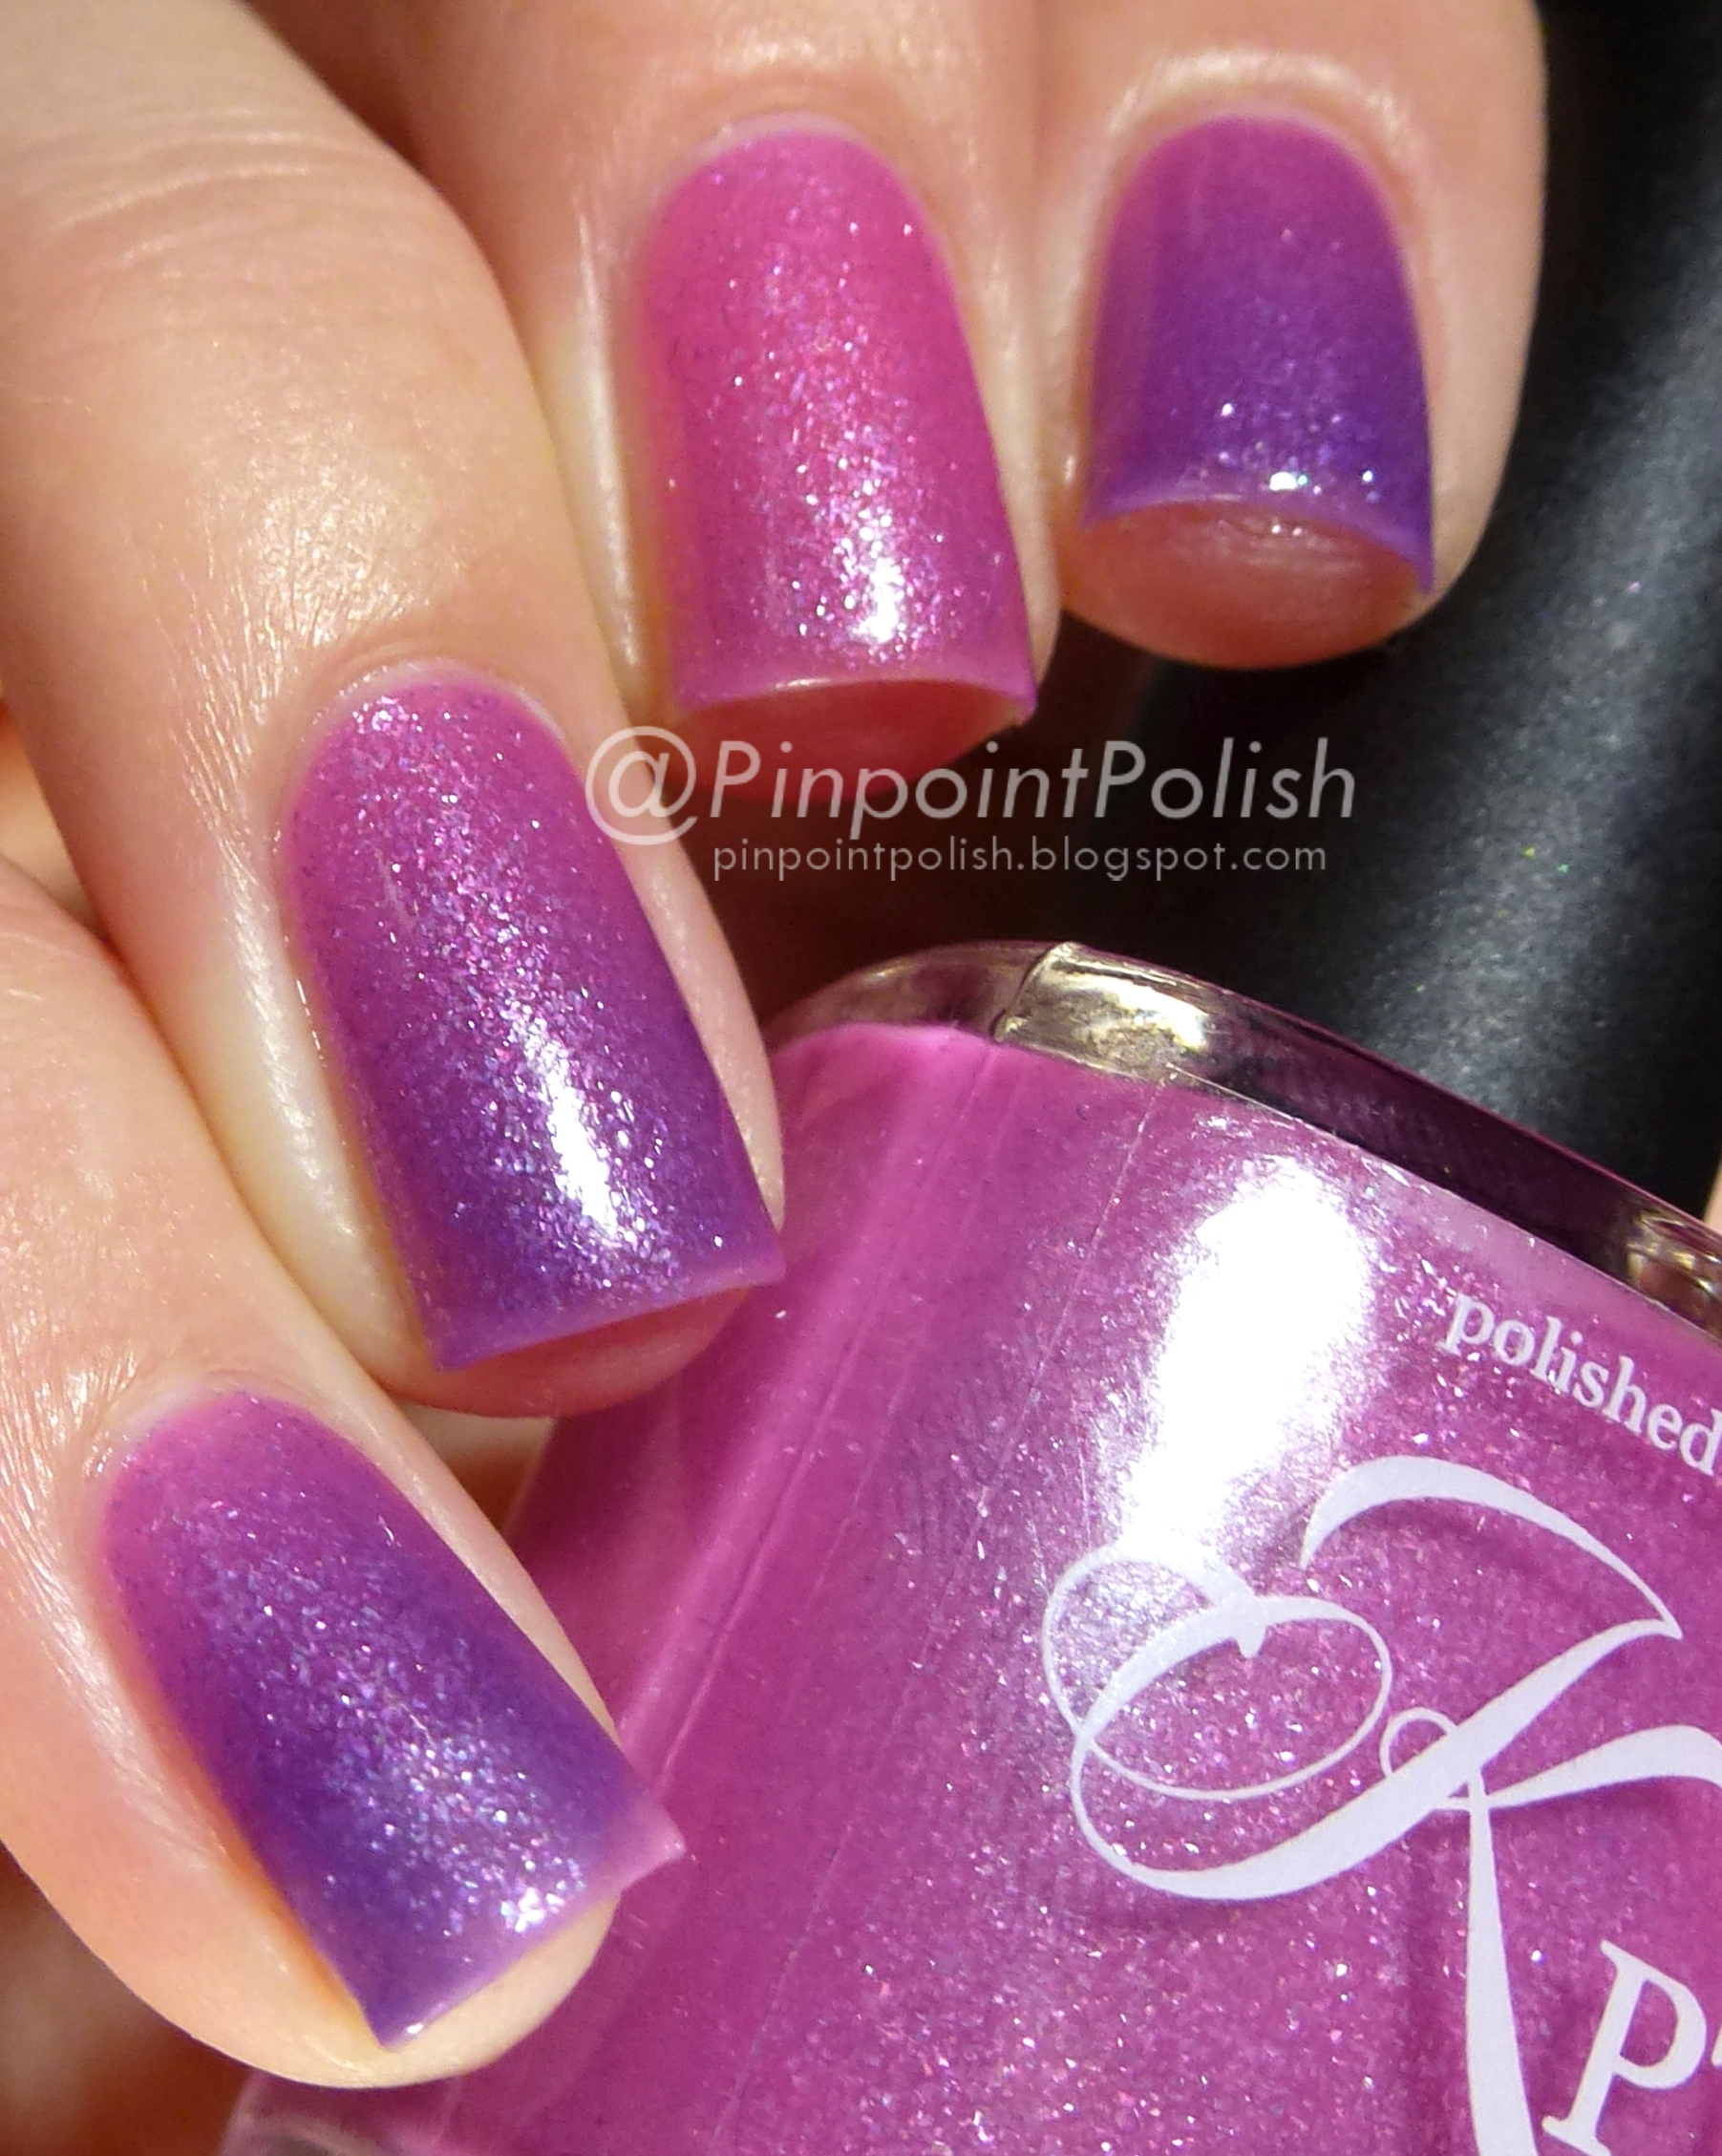 Love In Bloom, Polished by KPT, swatch